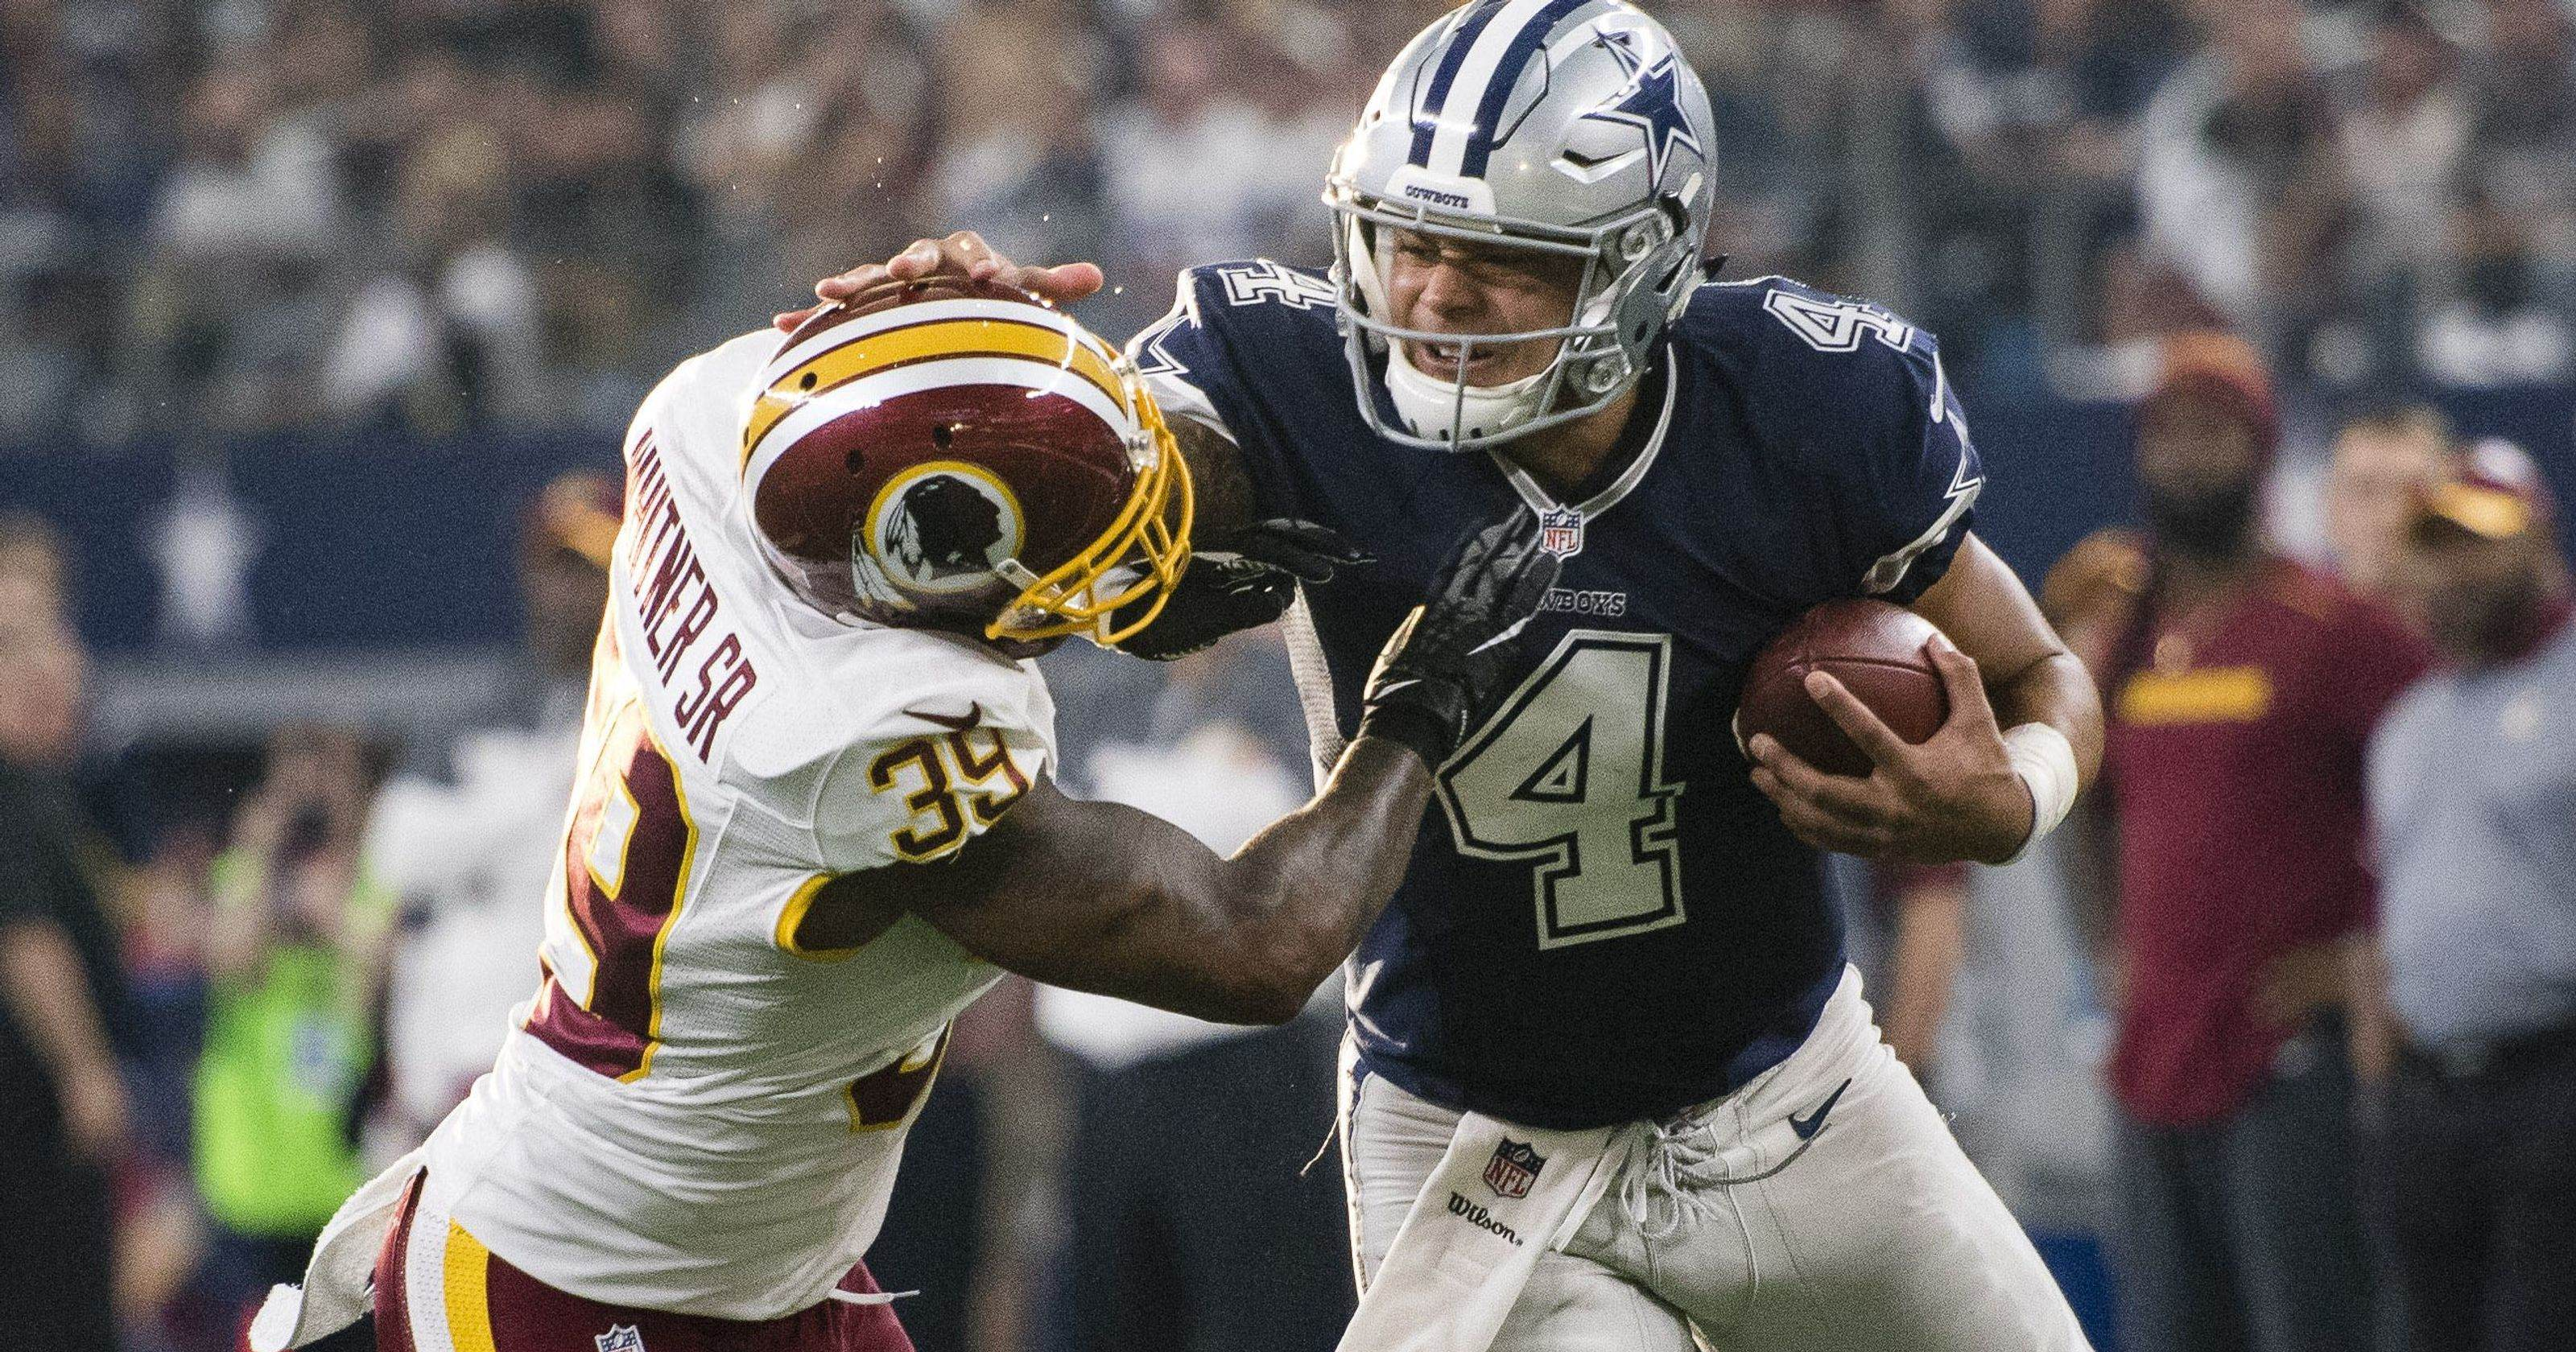 Cowboys' Offense Shaky In Loss To NFC East Rival Redskins 20-17